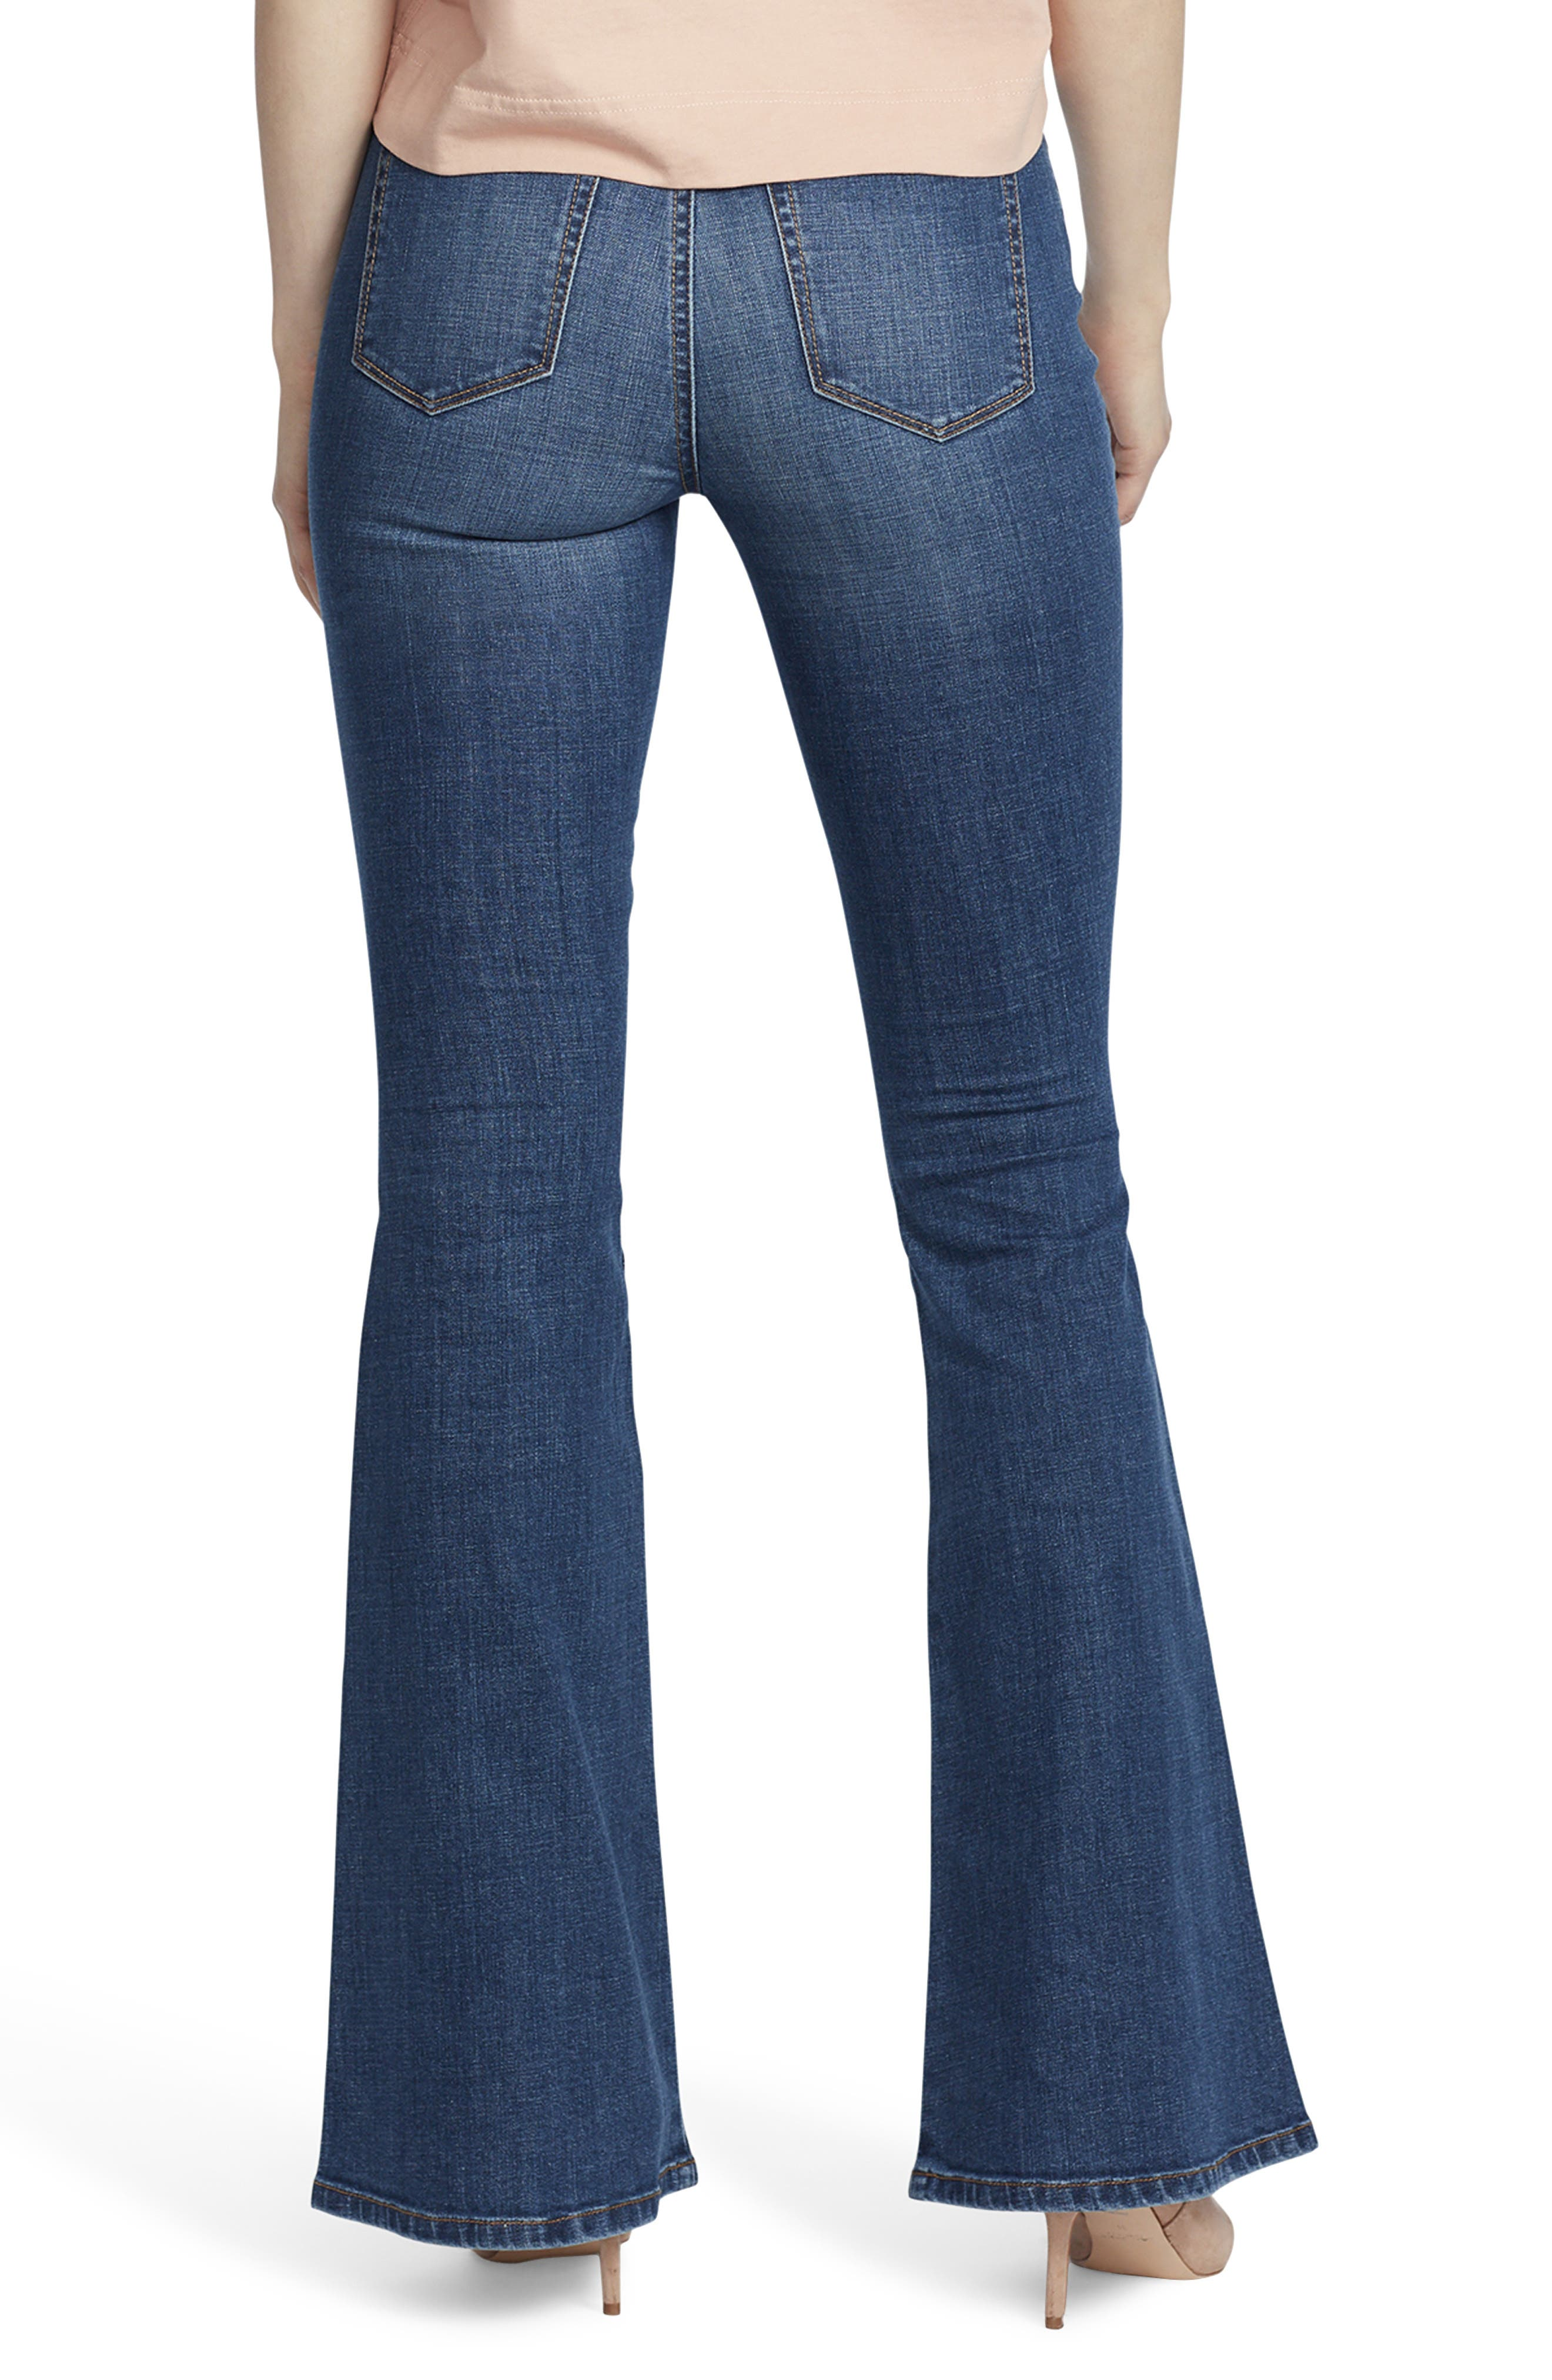 ELLA MOSS, High Waist Flare Jeans, Alternate thumbnail 2, color, NAOMI